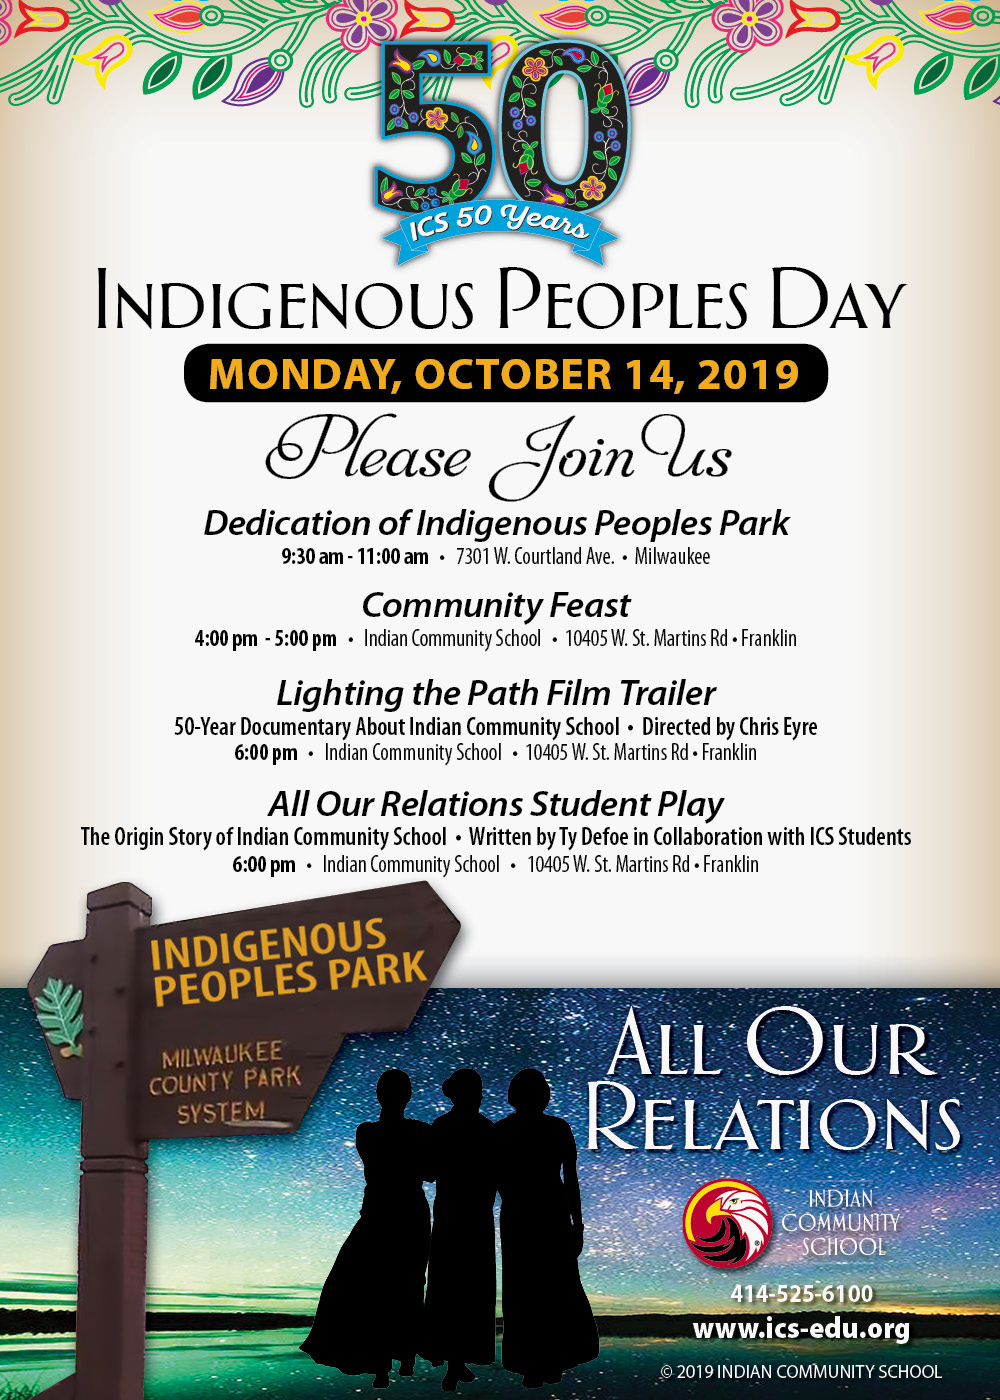 Indigenous Peoples Day Invitation